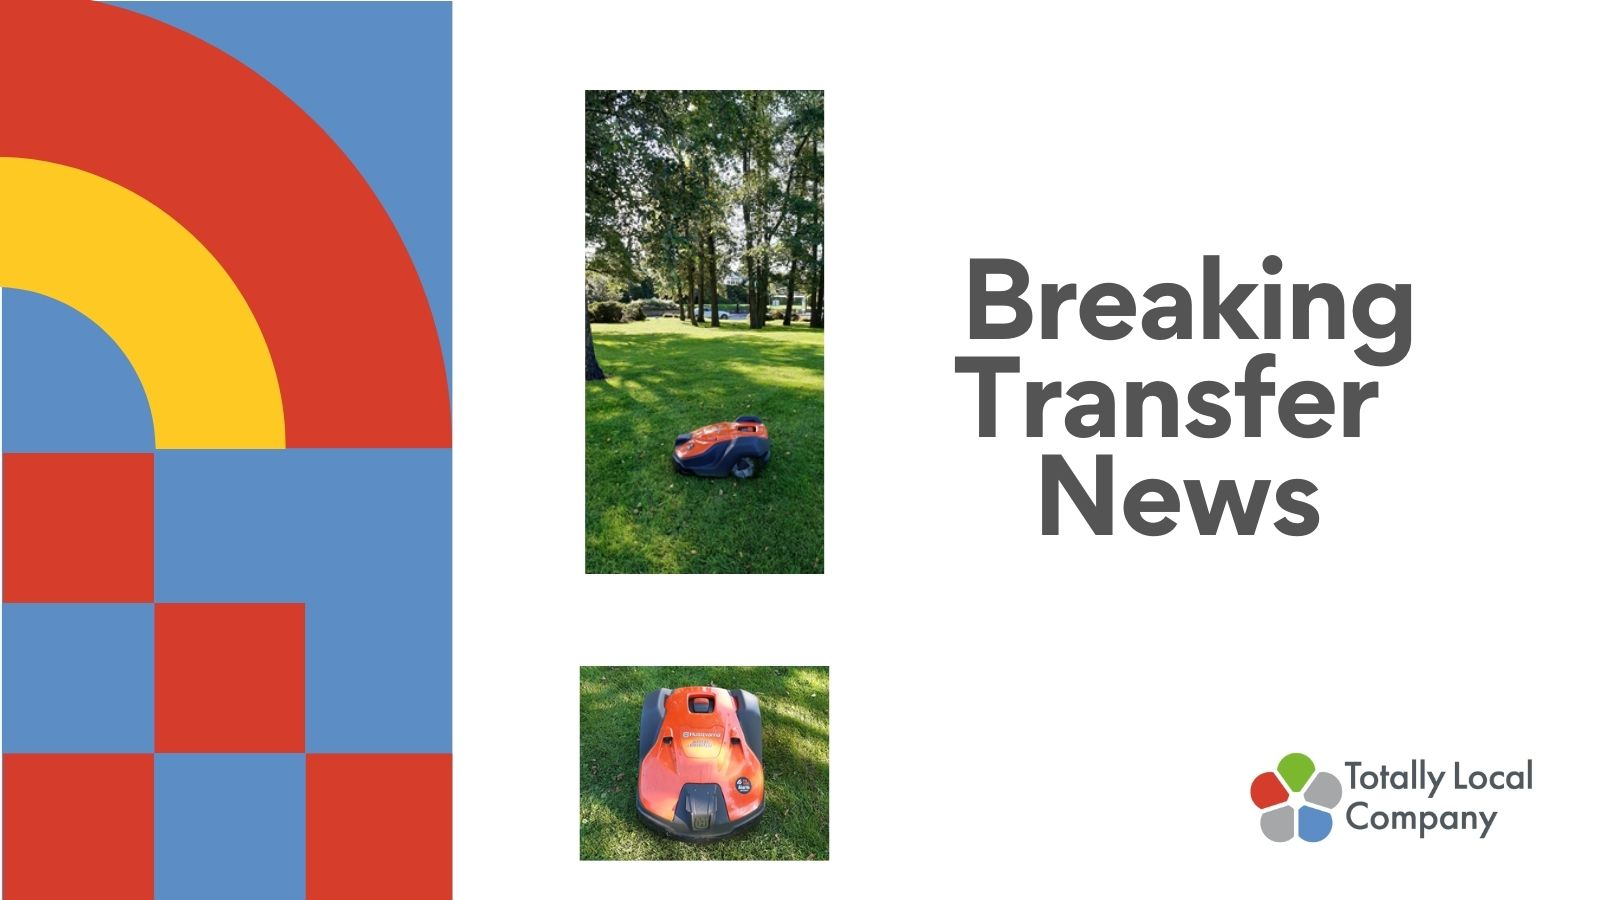 Wording - breaking transfer news, two photos of a small orange mower on green grass, one image has trees towards the rear